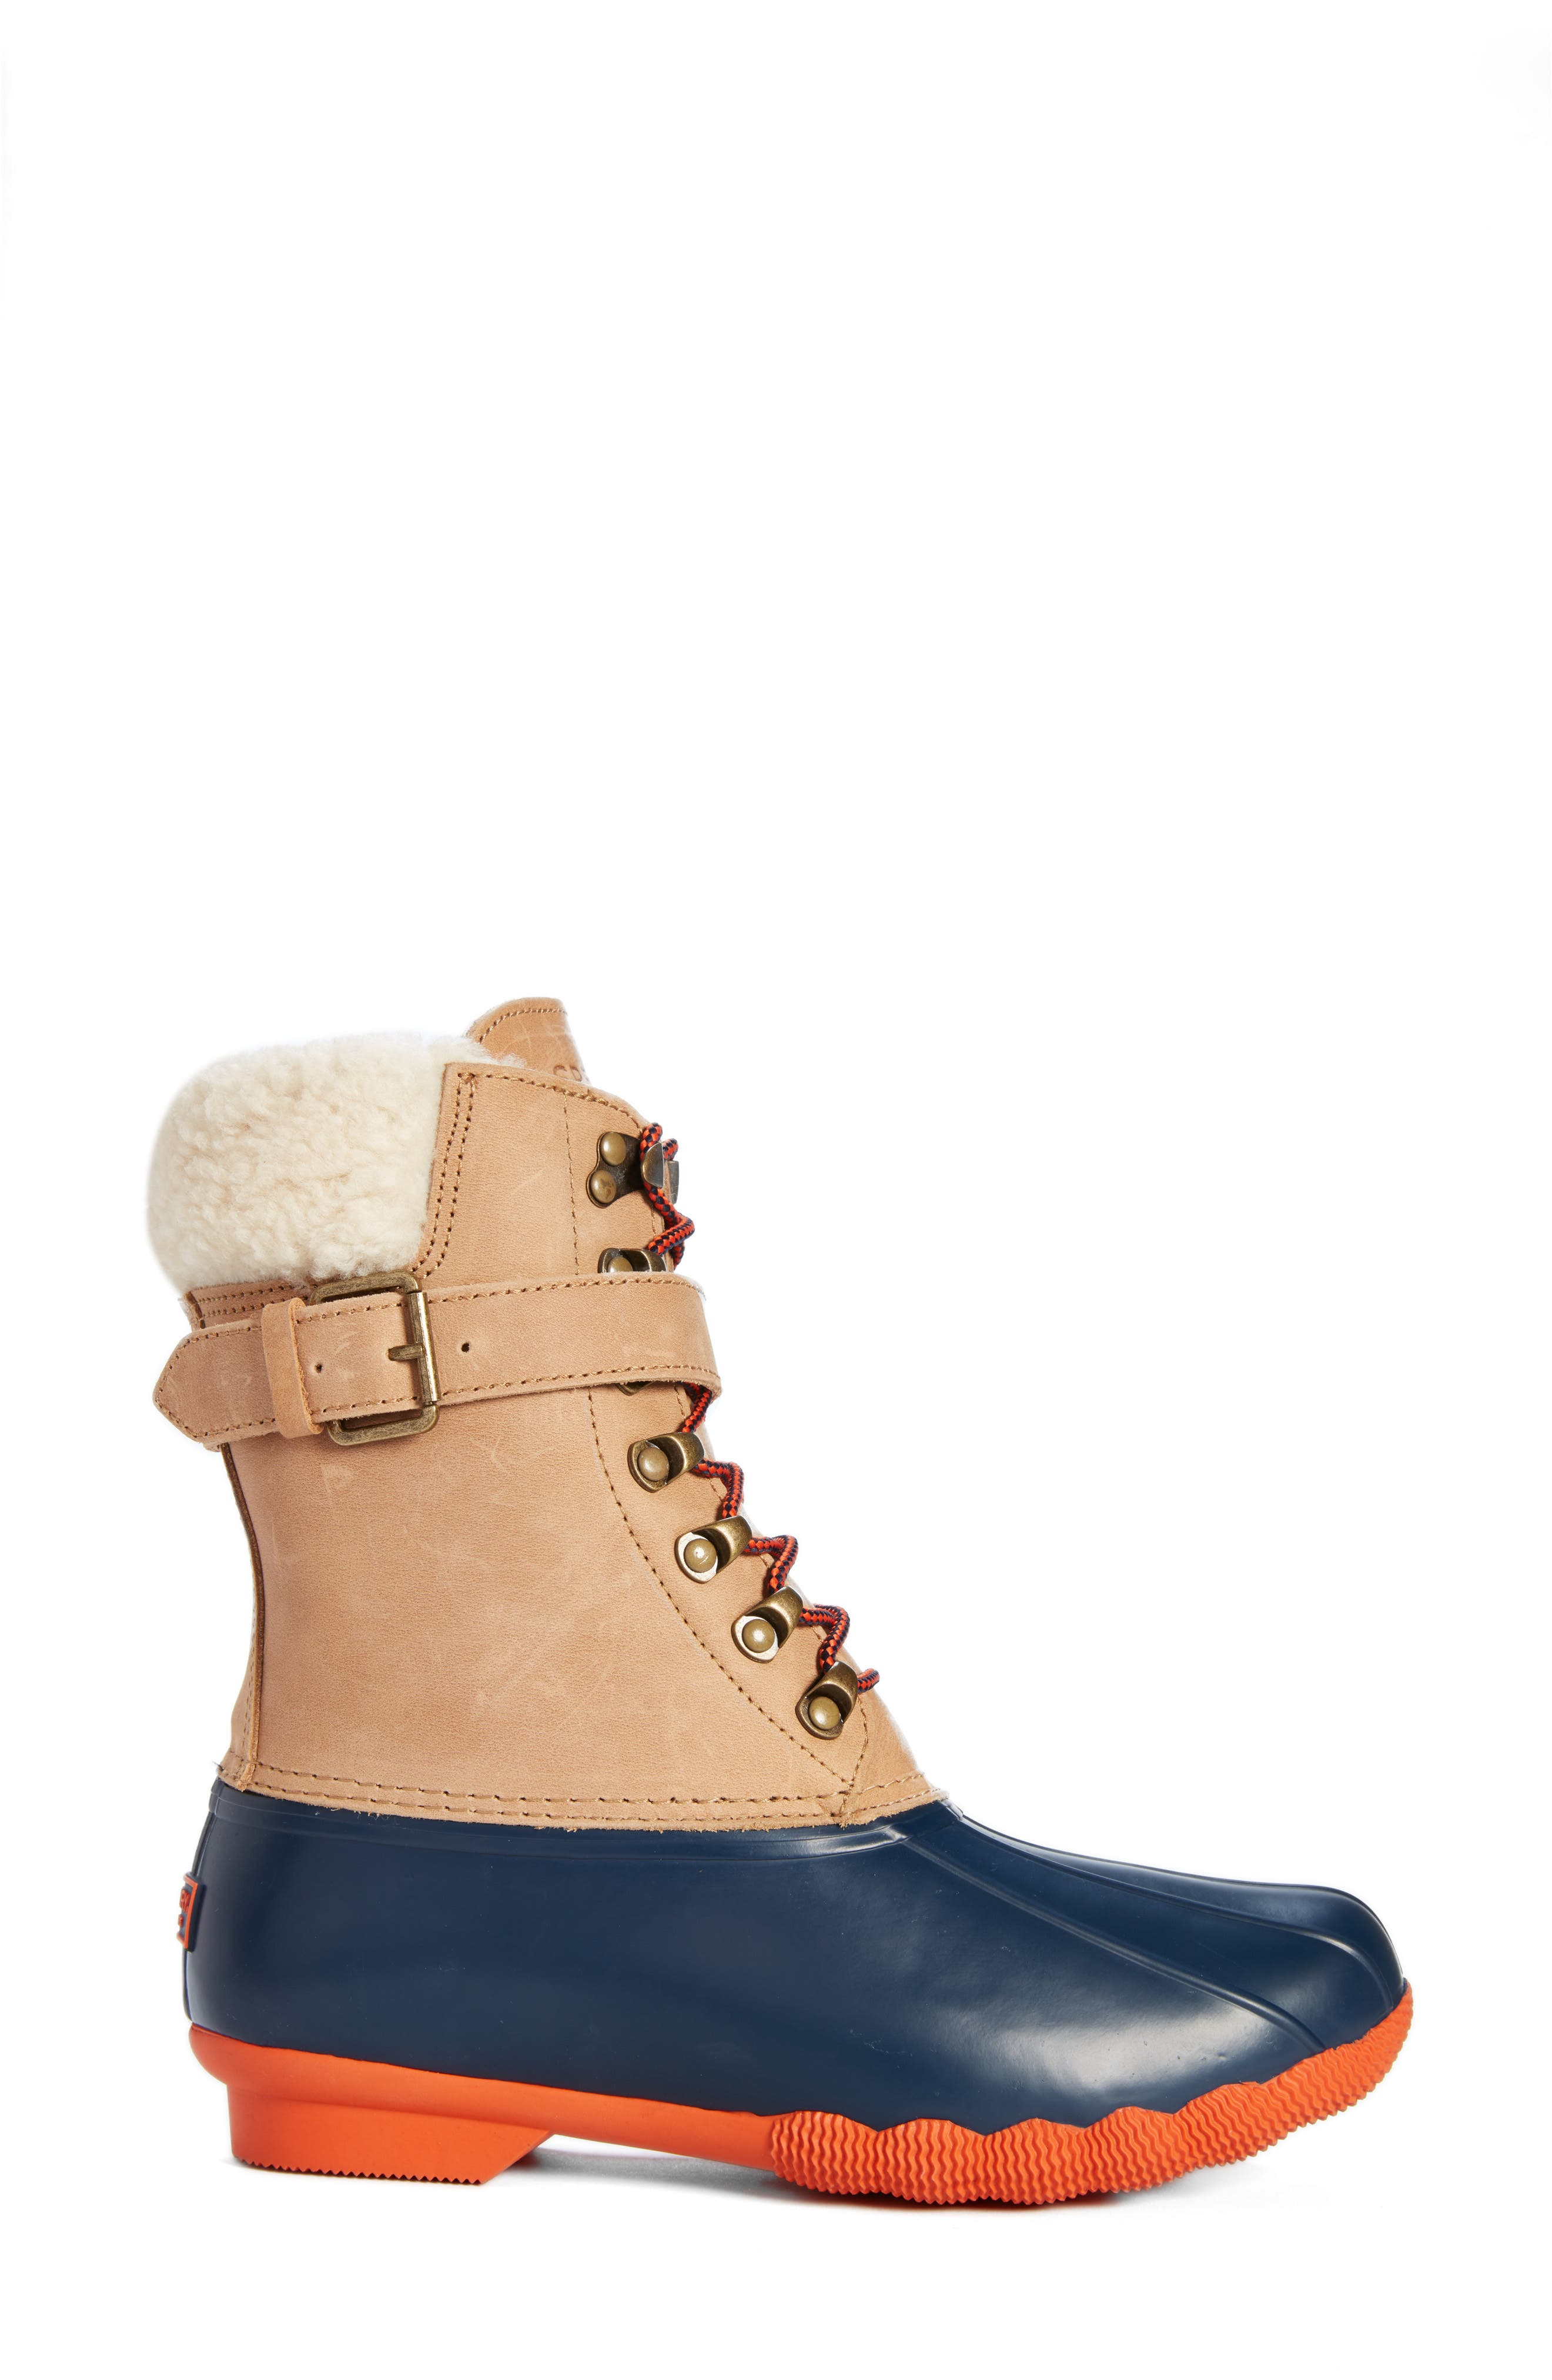 SPERRY,                             Shearwater Water-Resistant Genuine Shearling Lined Boot,                             Alternate thumbnail 3, color,                             200